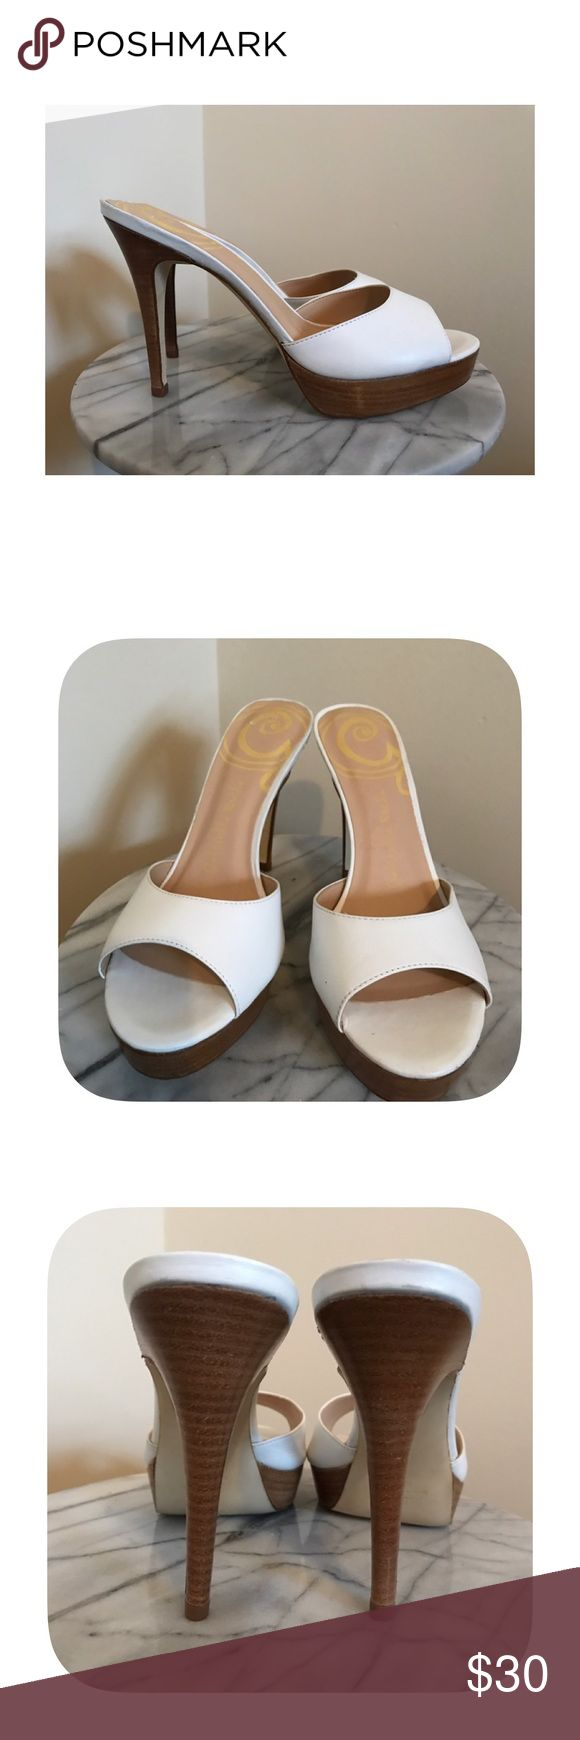 "⭐️ Gabriella Rocha white heeled sandal 10 Very lightly worn Gabriella Rocha size 10 white sandals with 4.5"" heel. Gabriella Rocha Shoes"